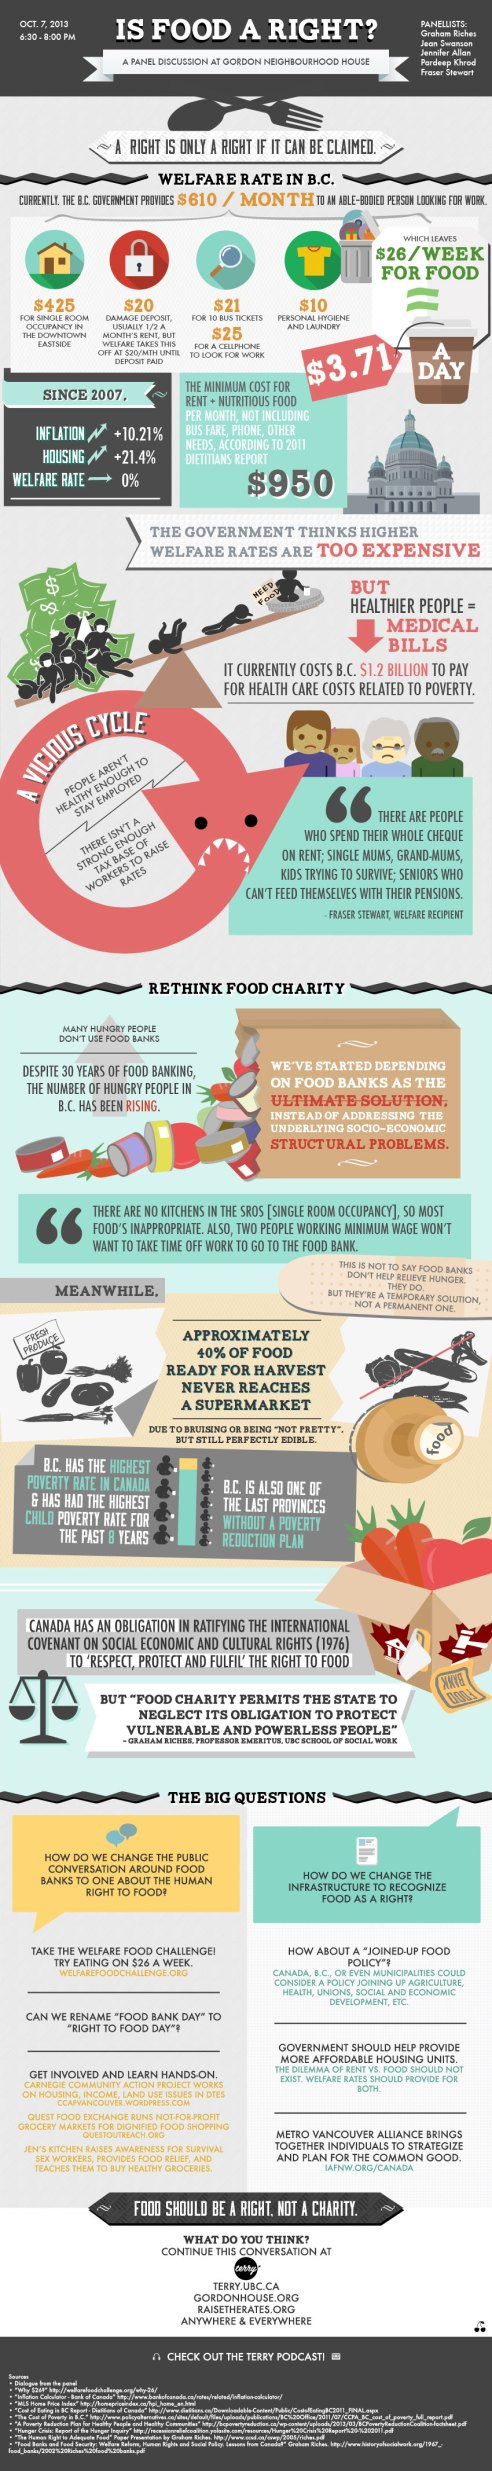 Is Food A Right Infographic